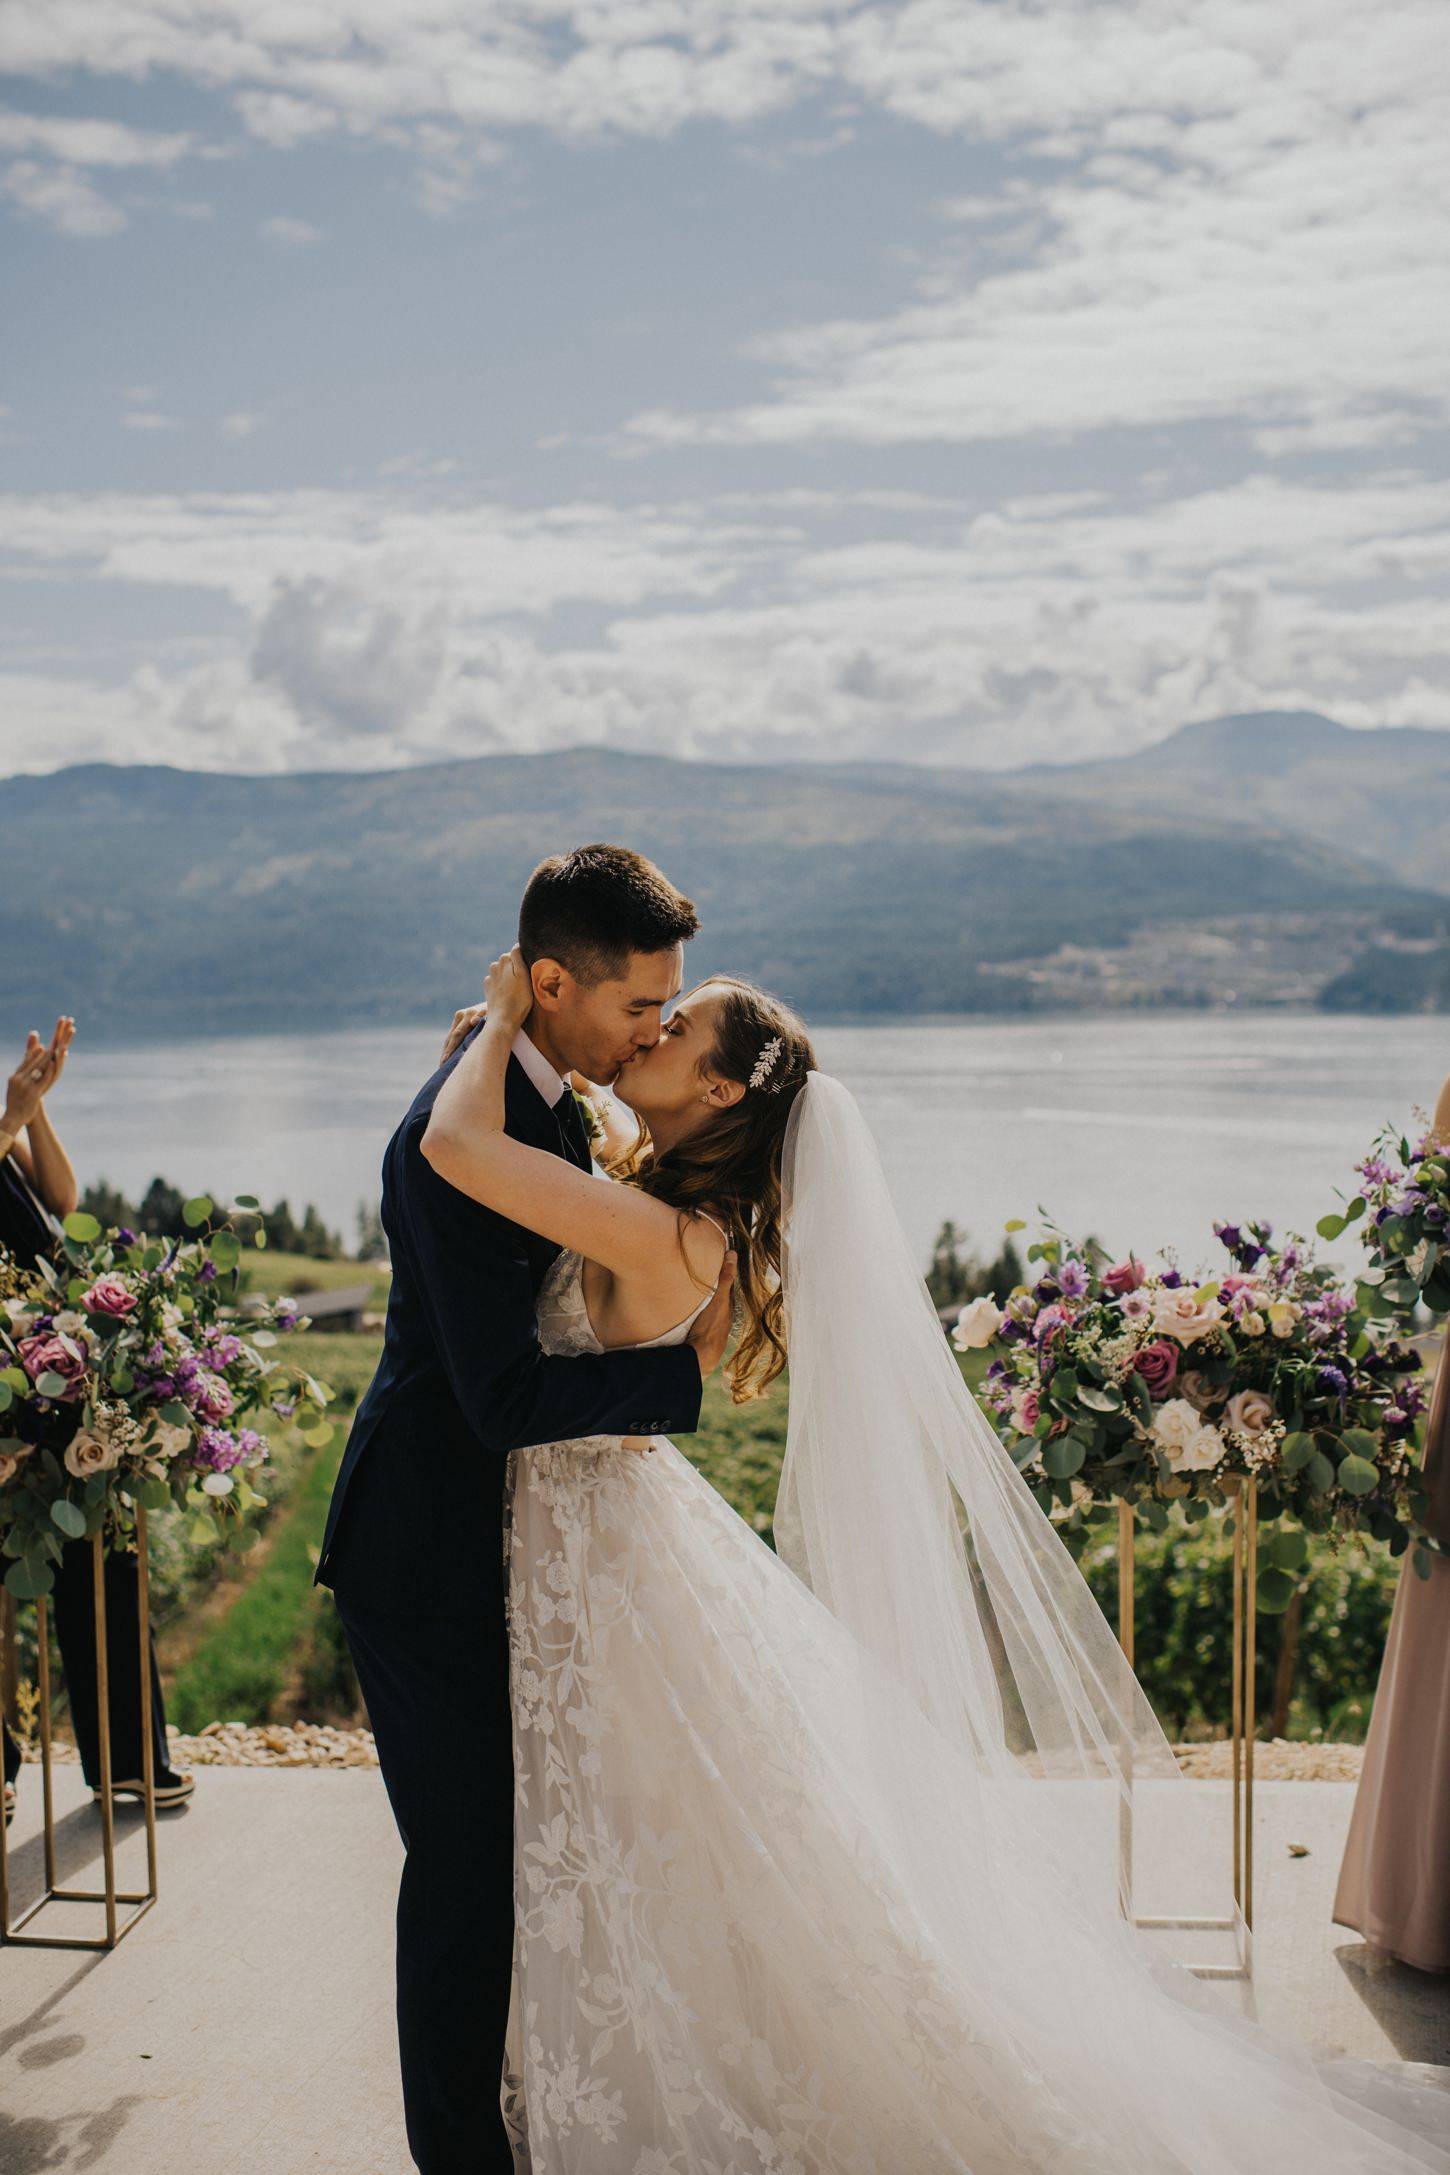 Kelowna Winery Wedding Ceremony